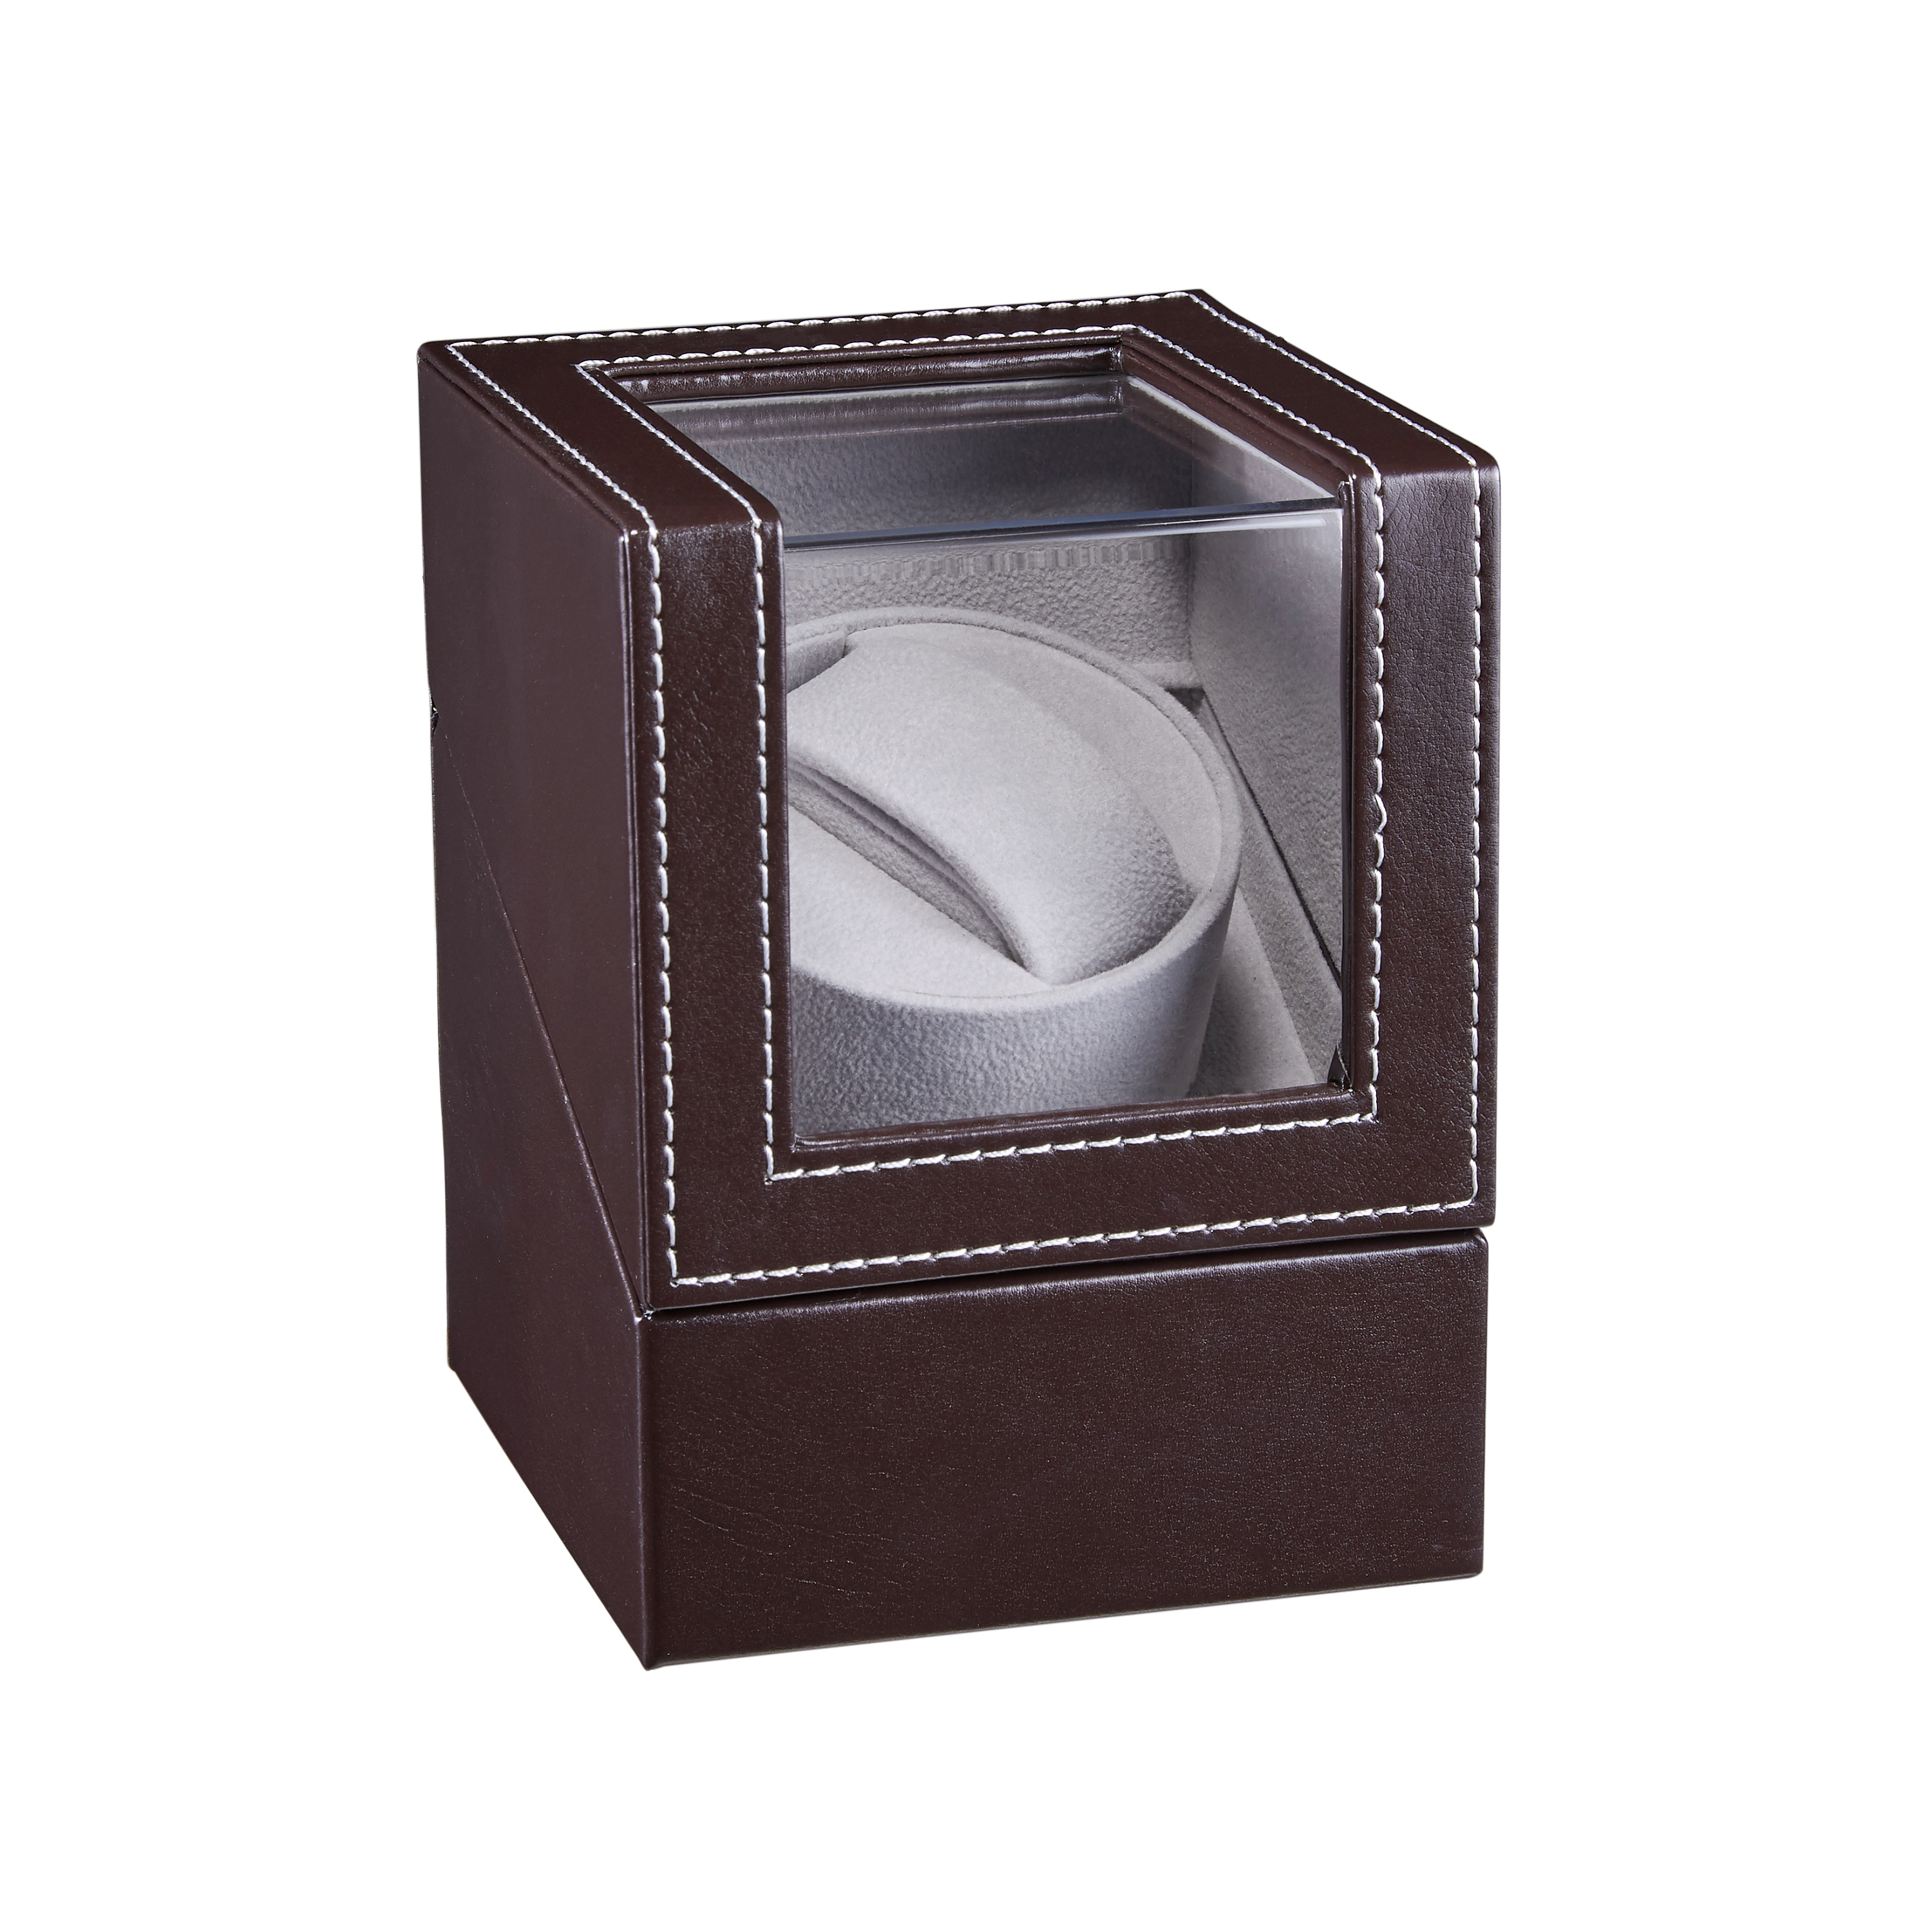 New Automatic Mechanical Watch Winder Leather Watch Box High Class Motor Shaker Watch Holder Display Jewelry Box W125A | Watch Winders